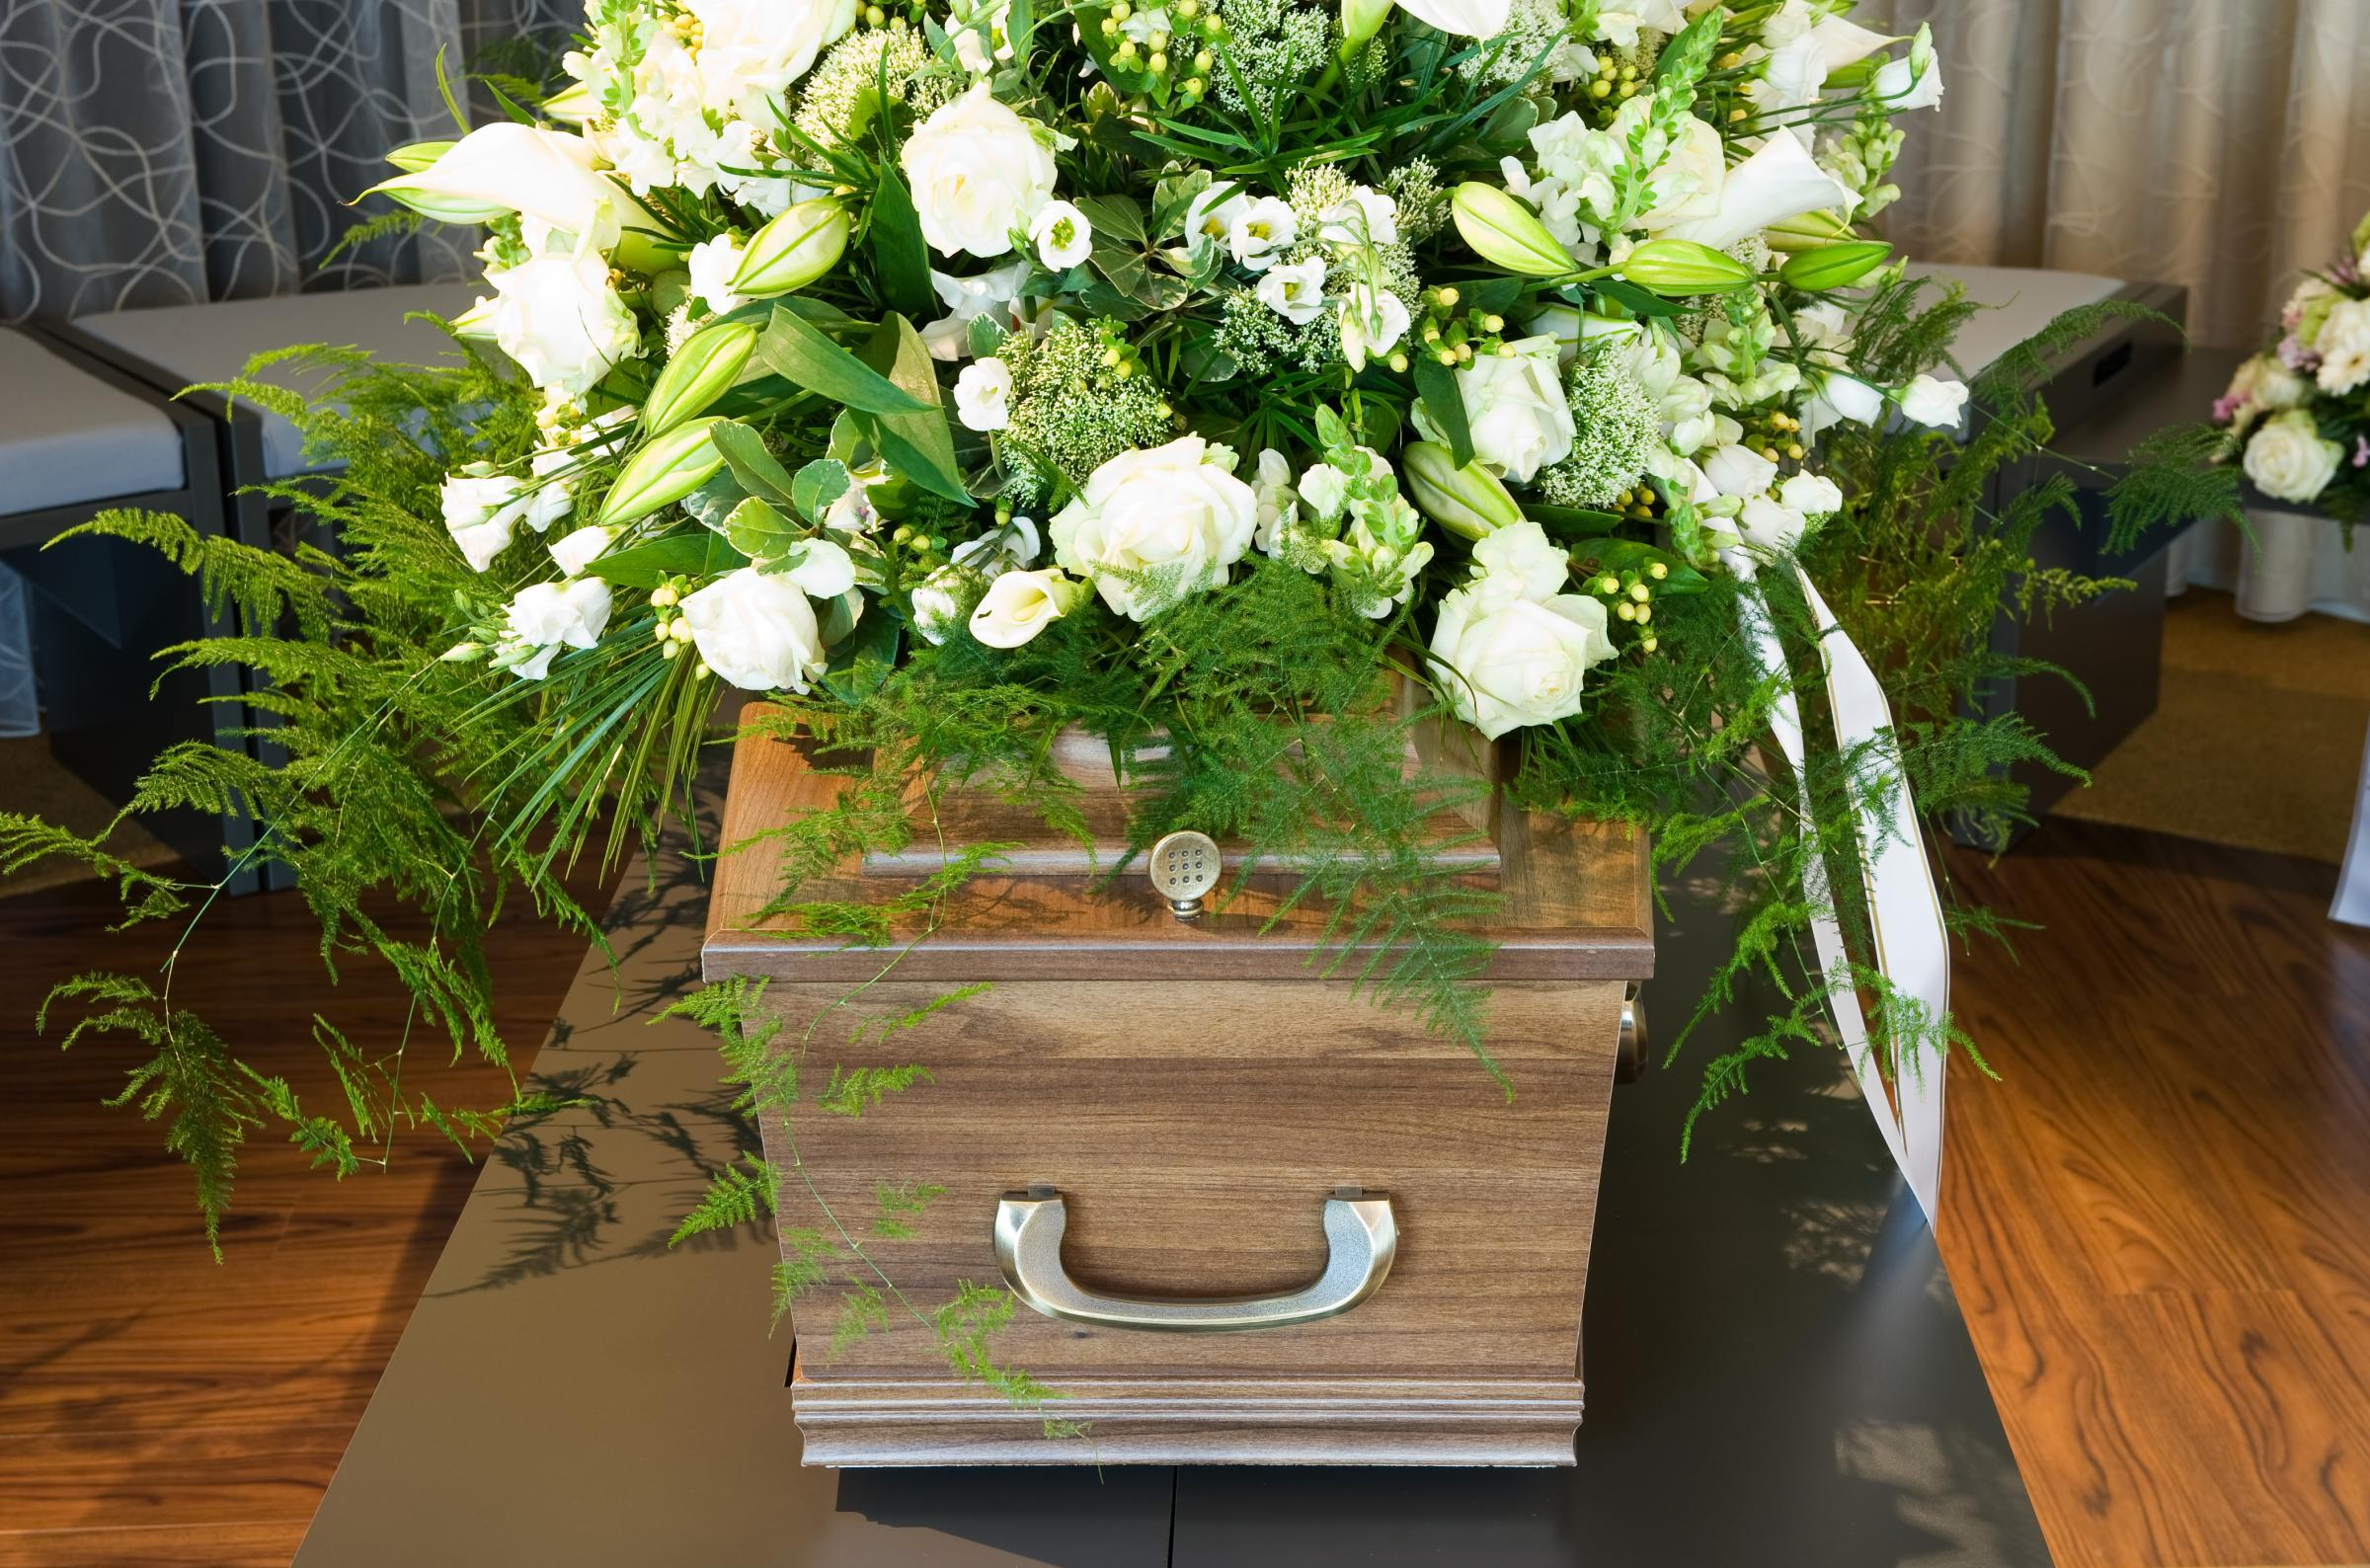 A coffin in a morgue with a flower arrangement.